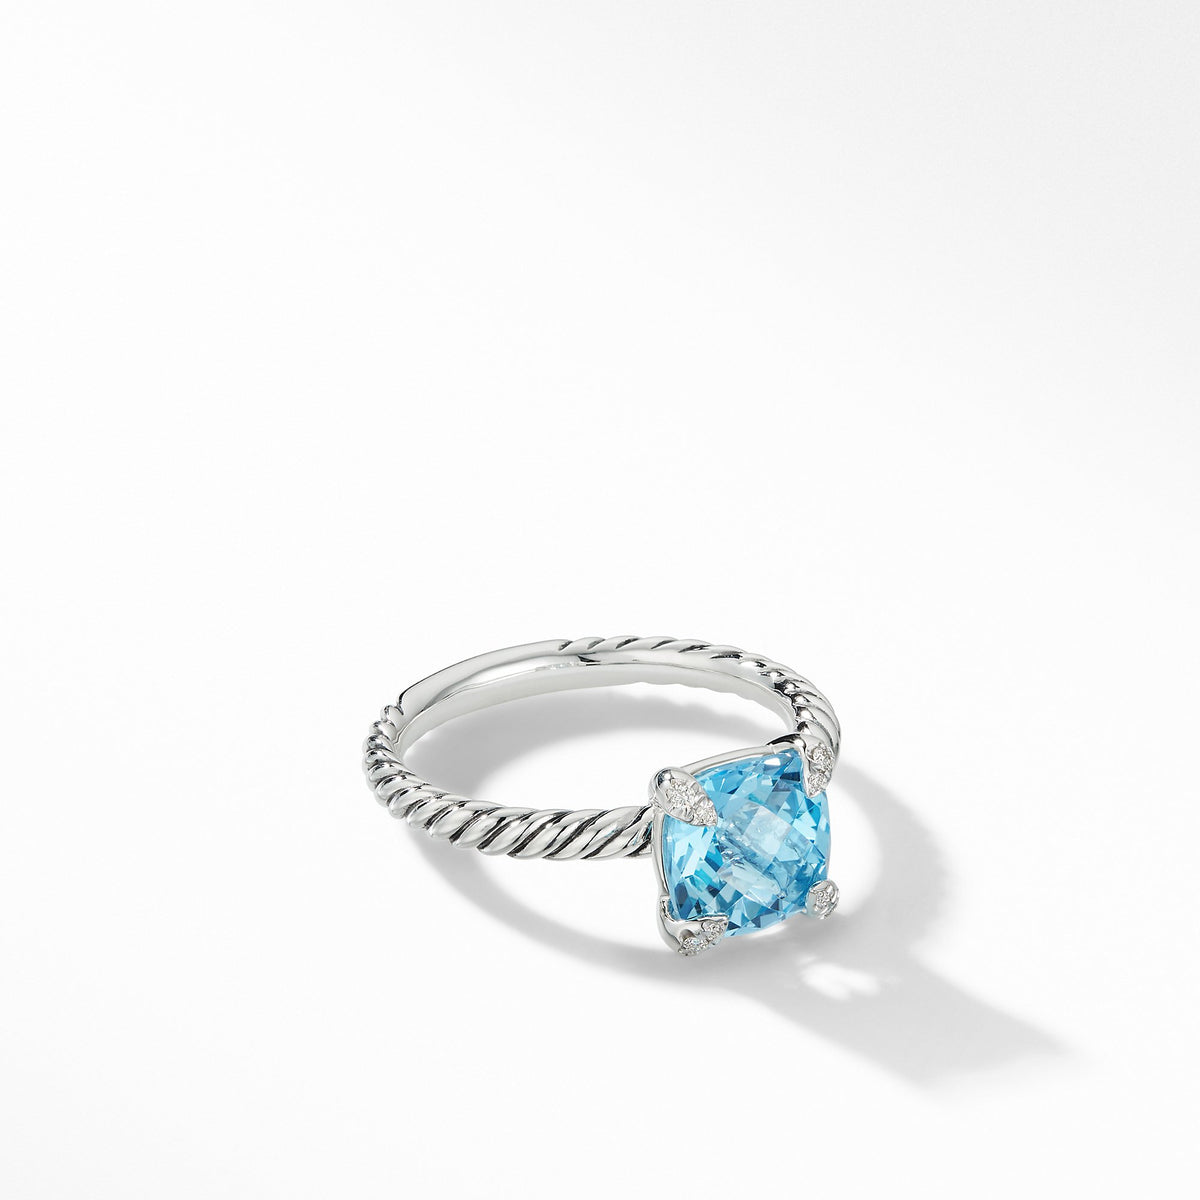 Chatelaine Ring with Blue Topaz and Diamonds